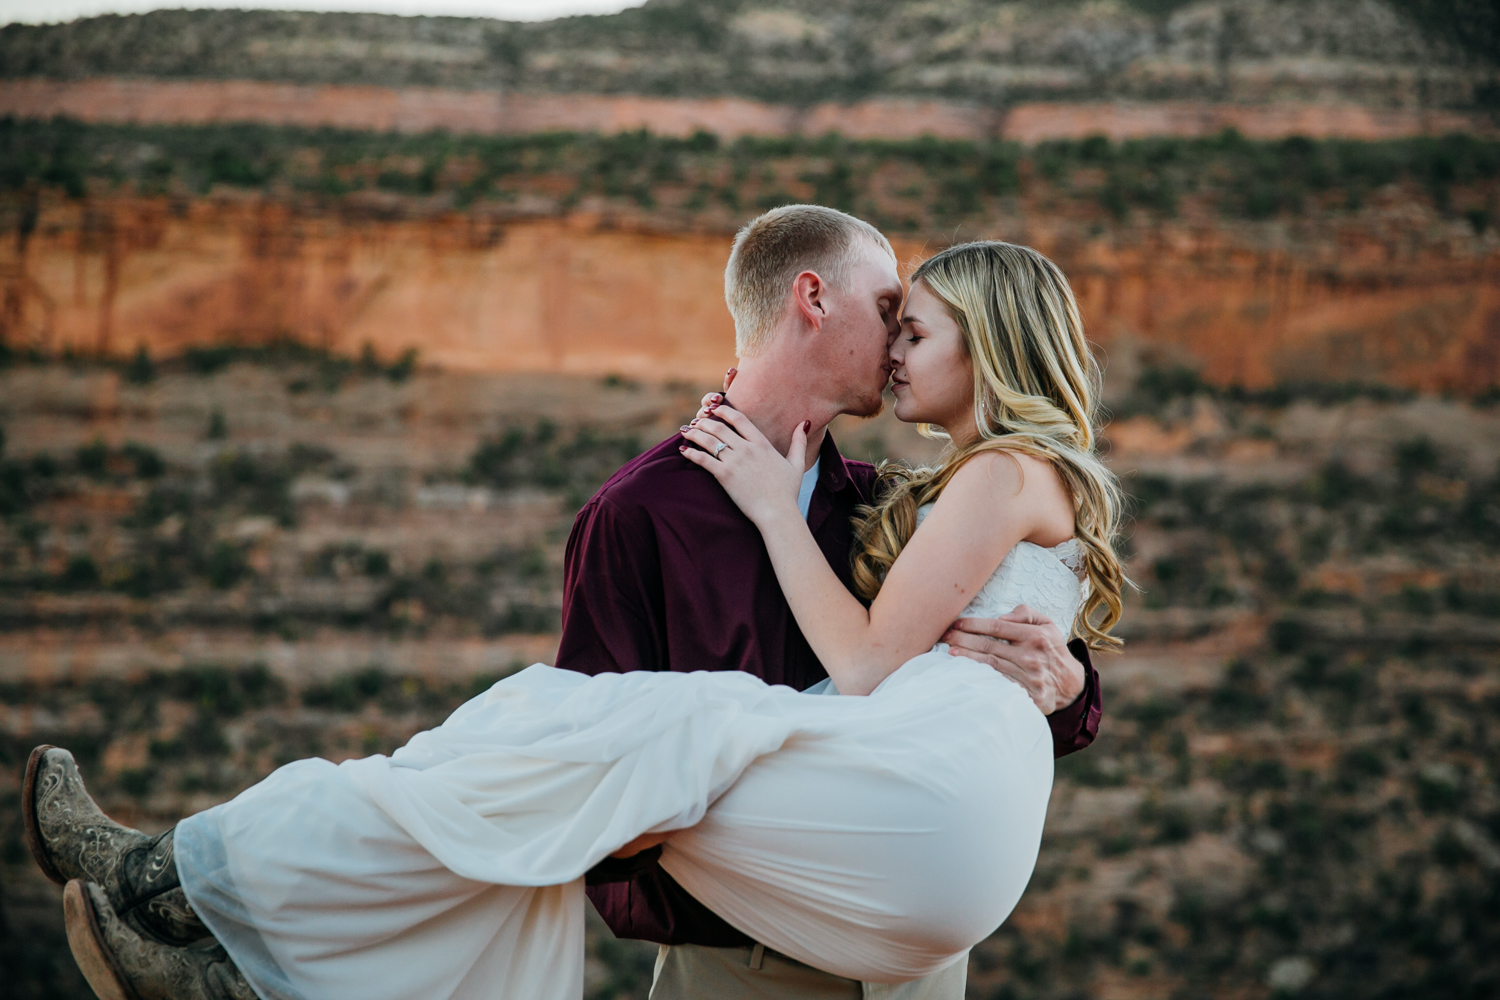 grand-junction-colorado-monument-wedding-photographer-engagements-39.jpg